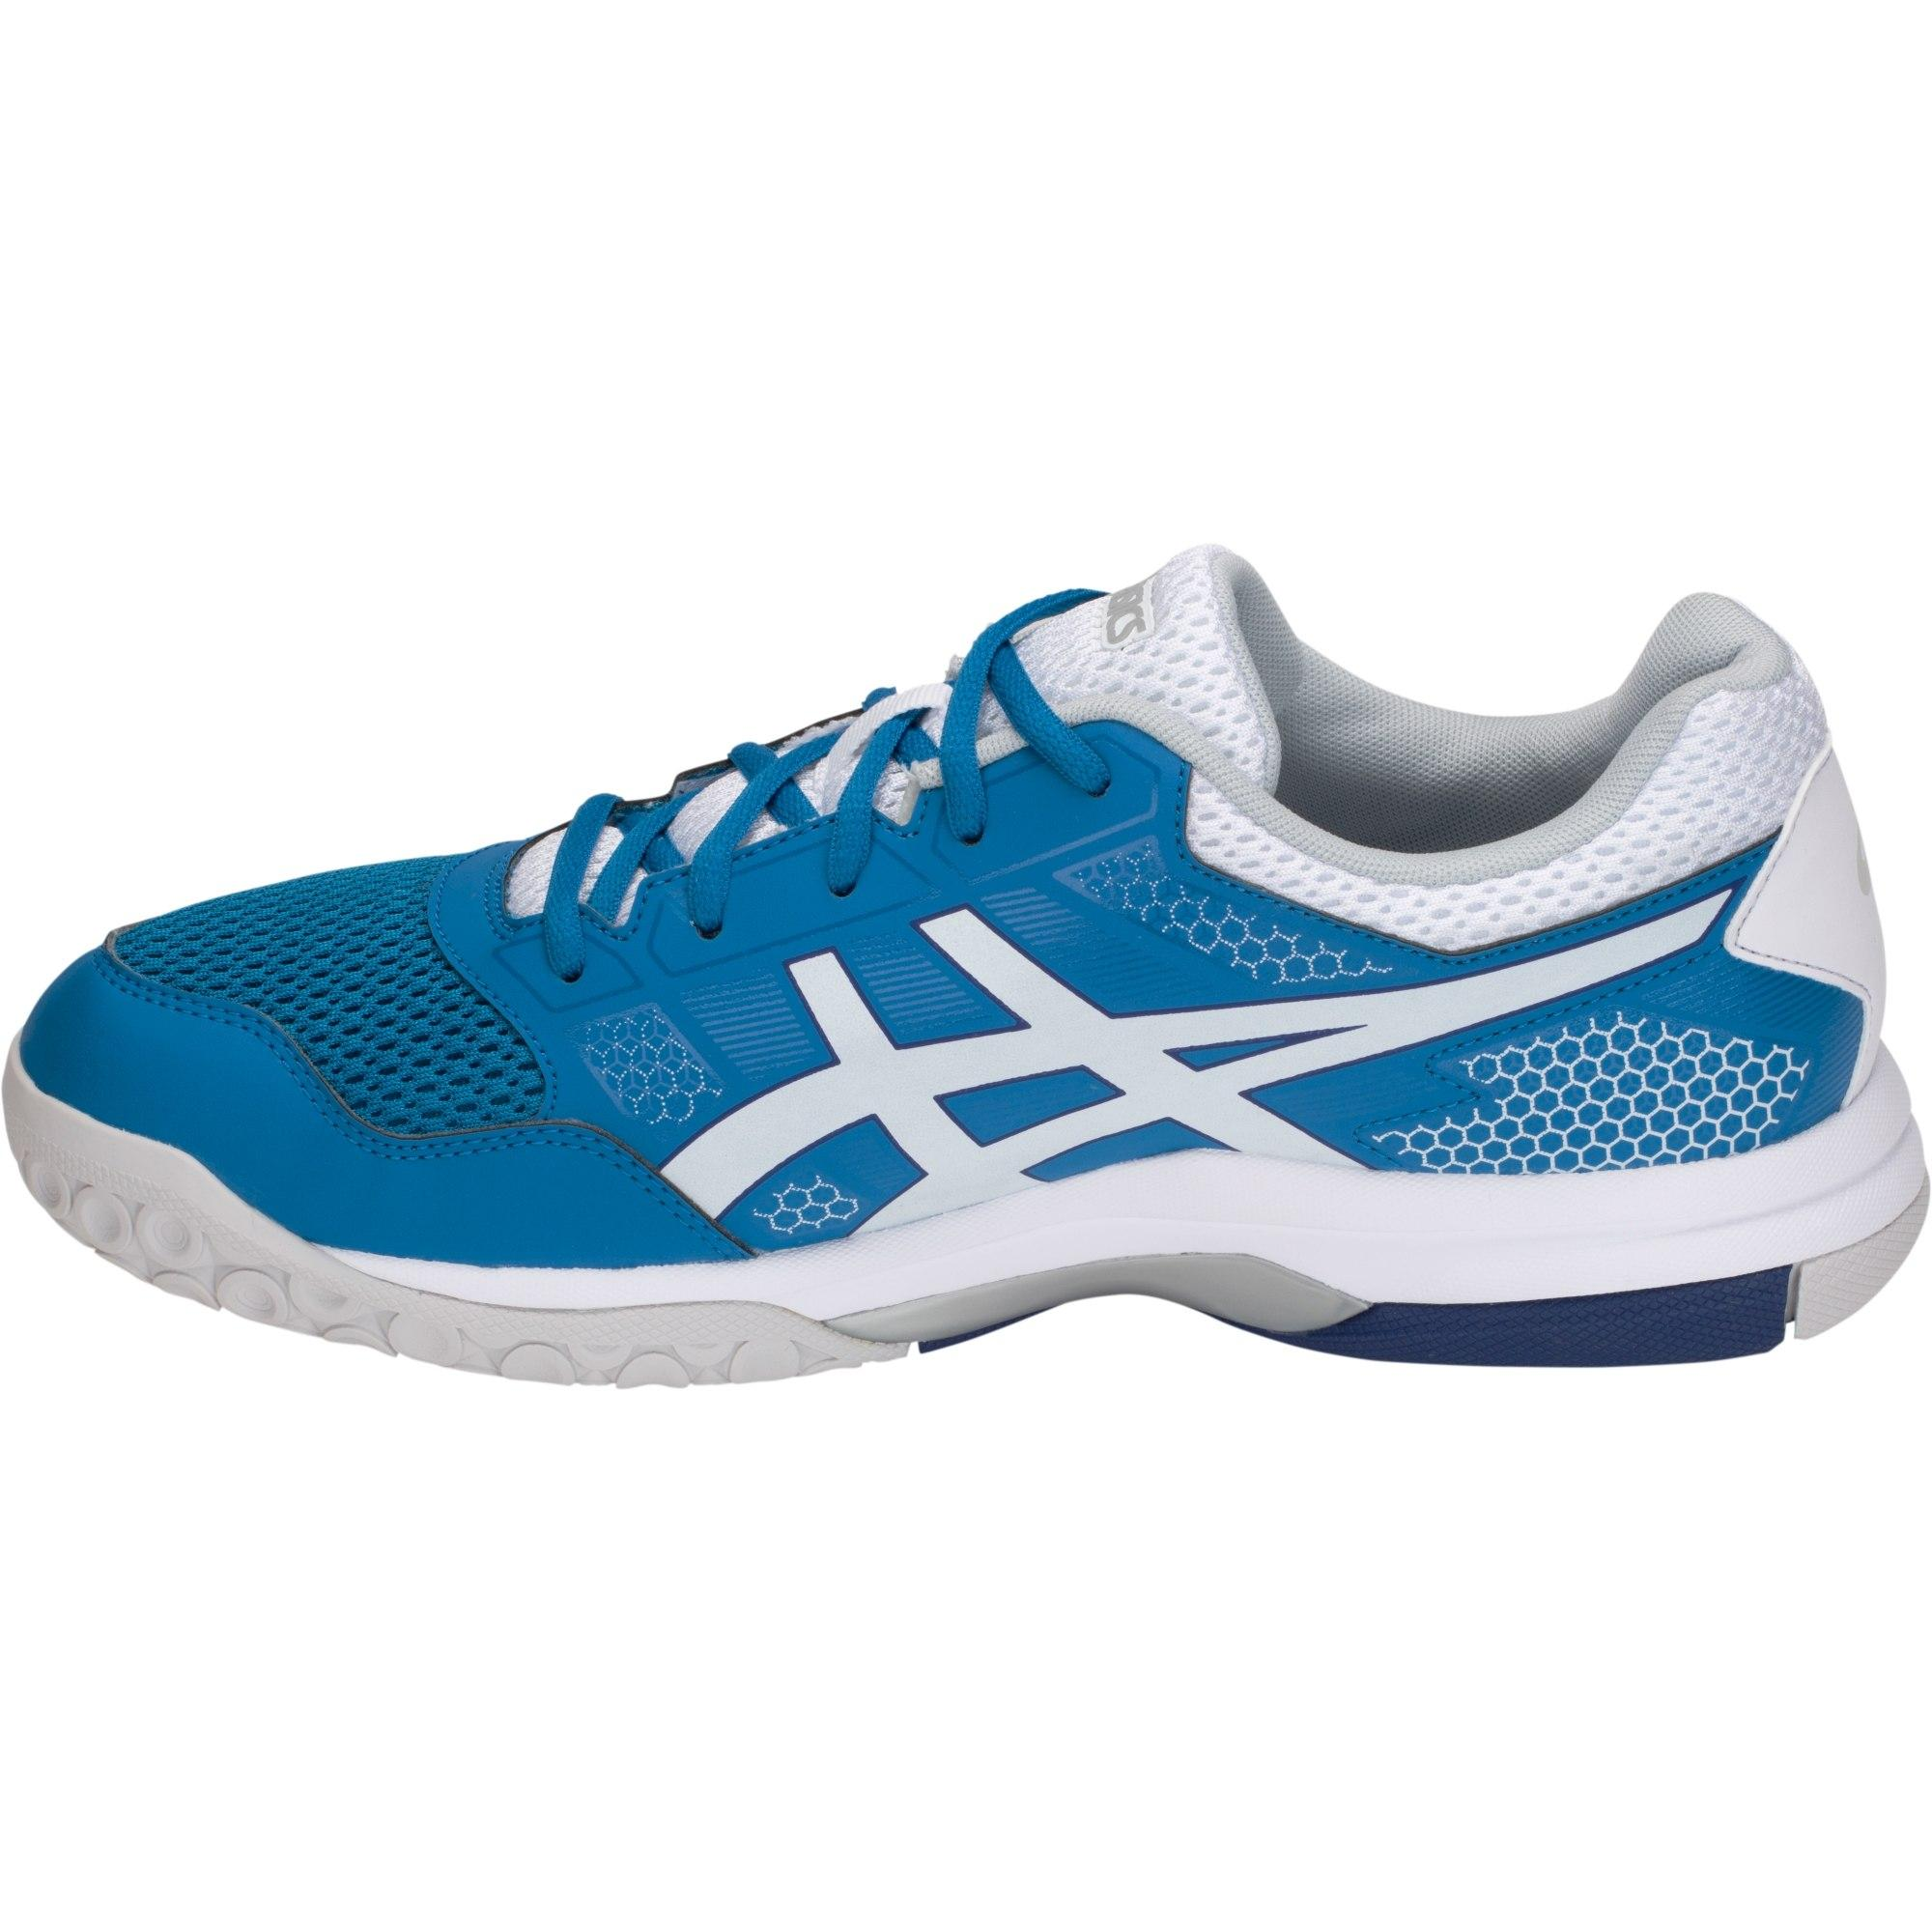 Asics Mens GEL-Rocket 8 Indoor Court Shoes - Race Blue/White